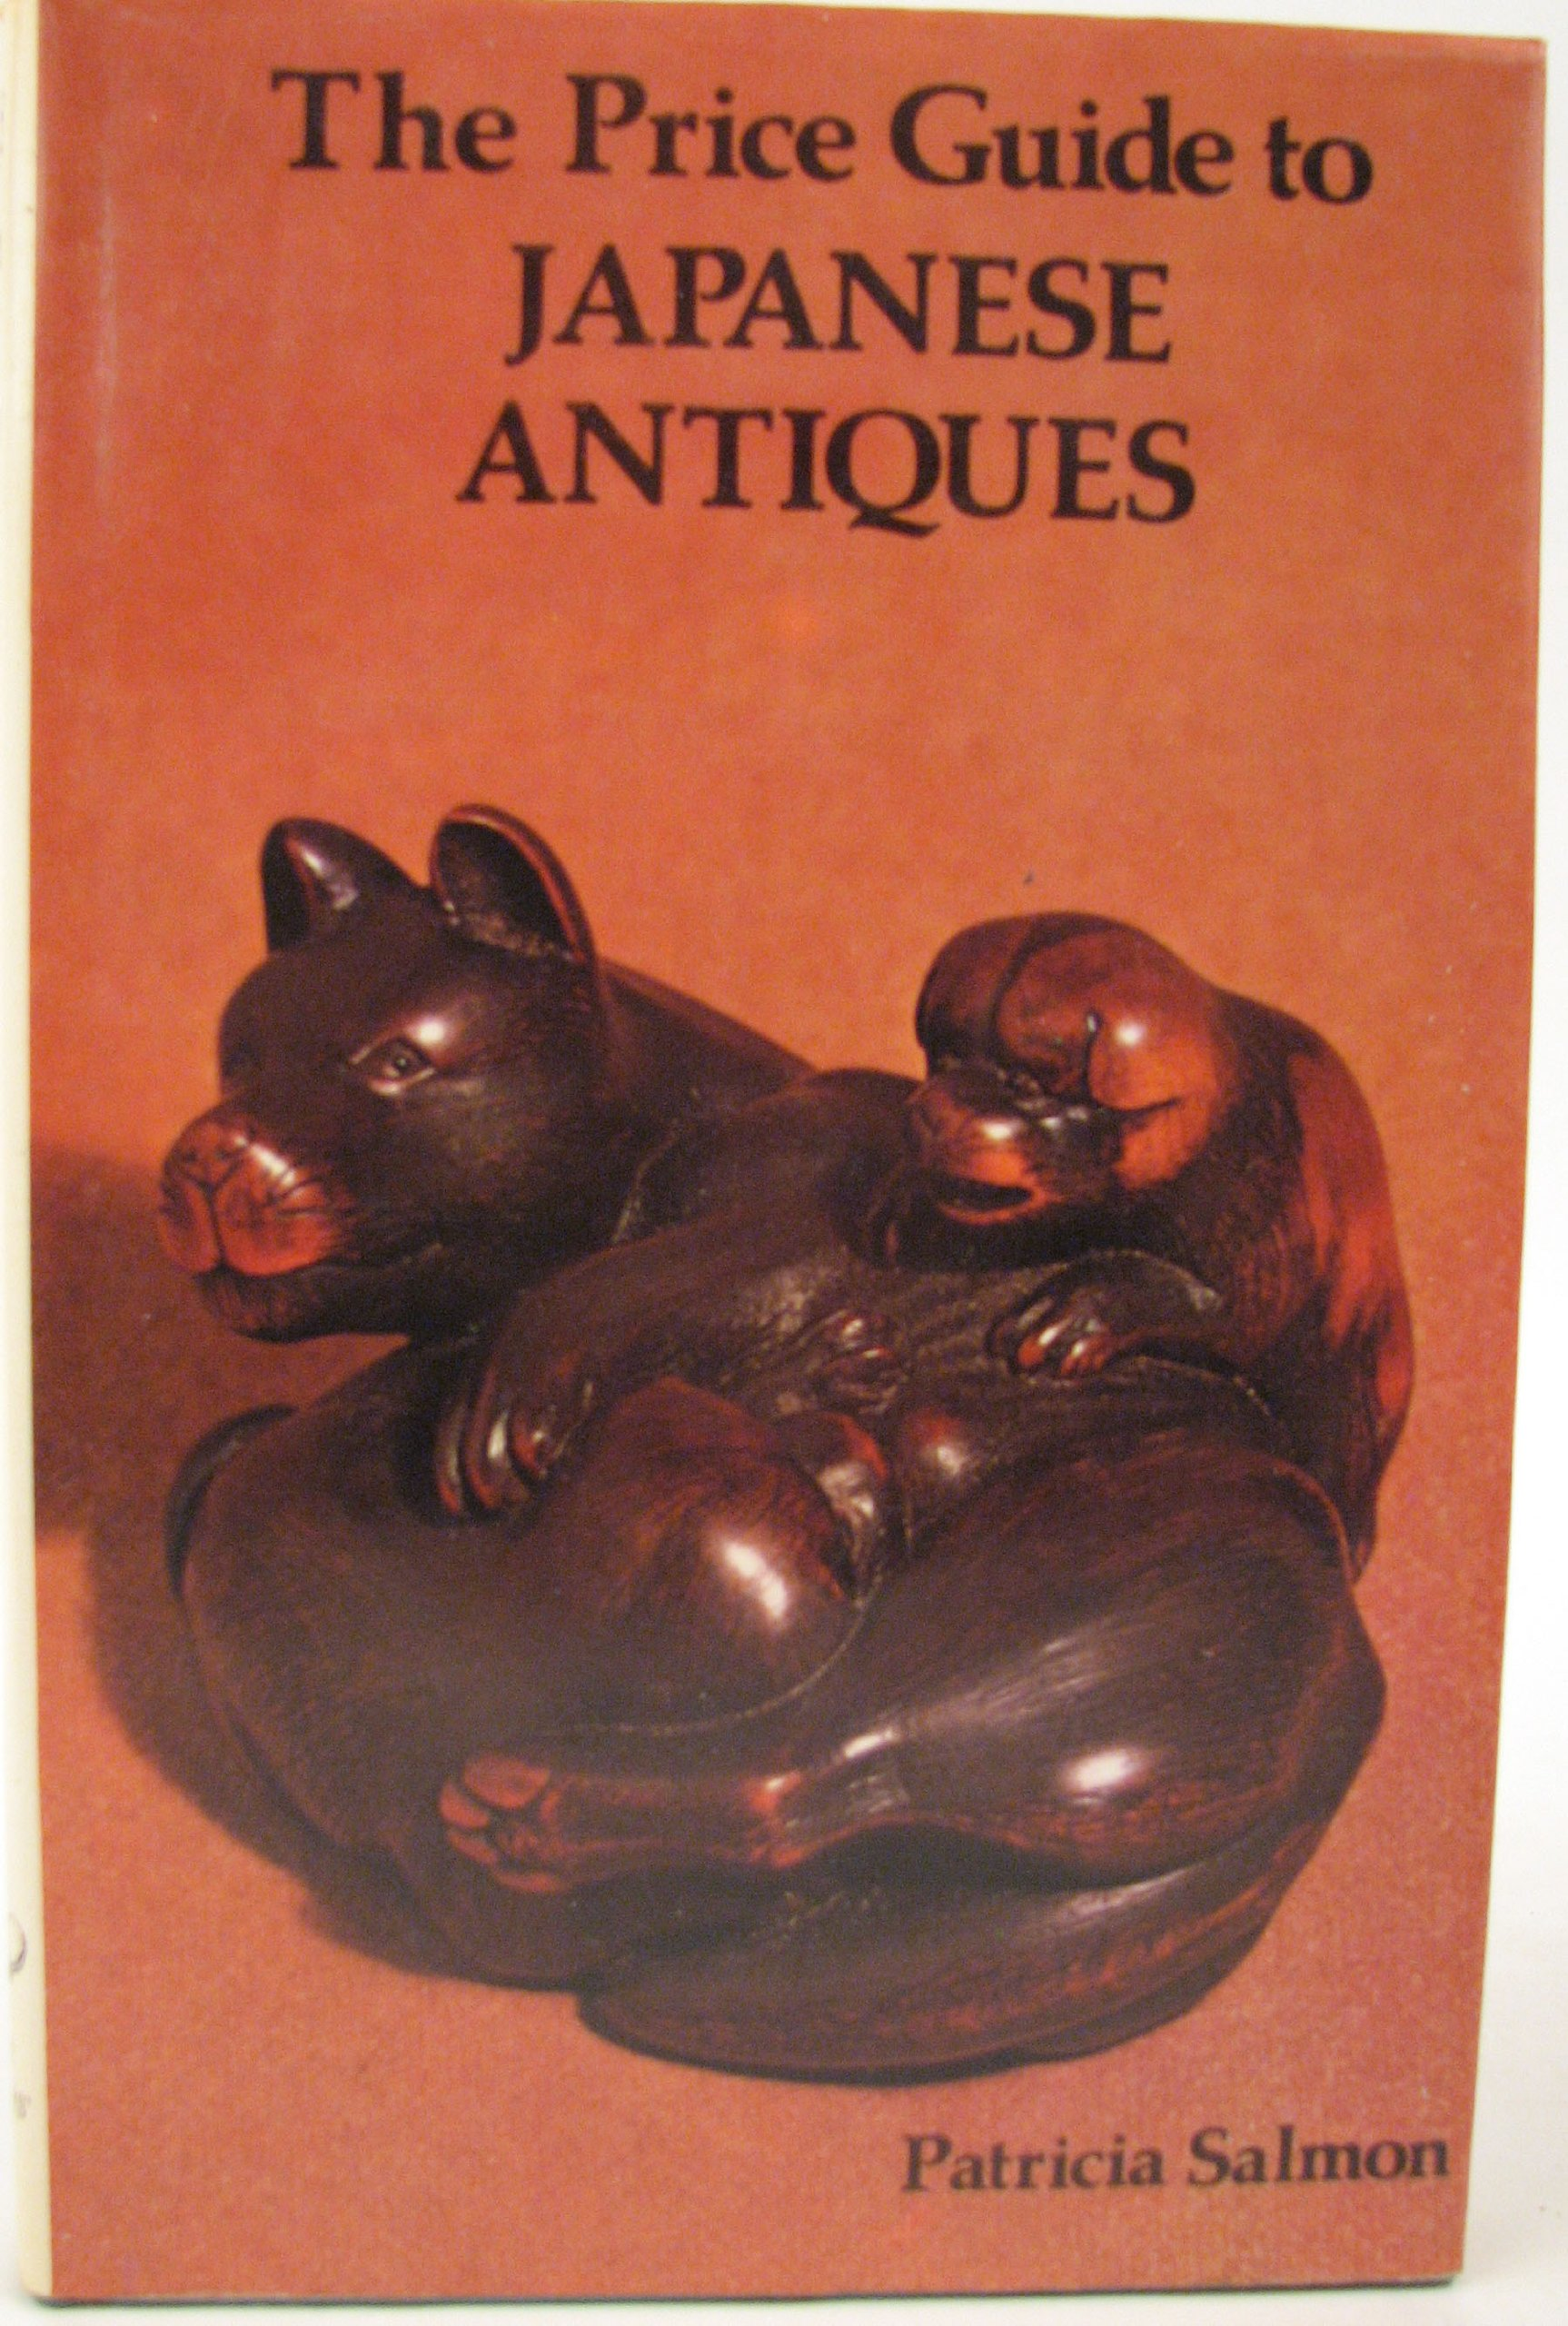 Price Guide to Japanese Antiques - Patricia Salmon